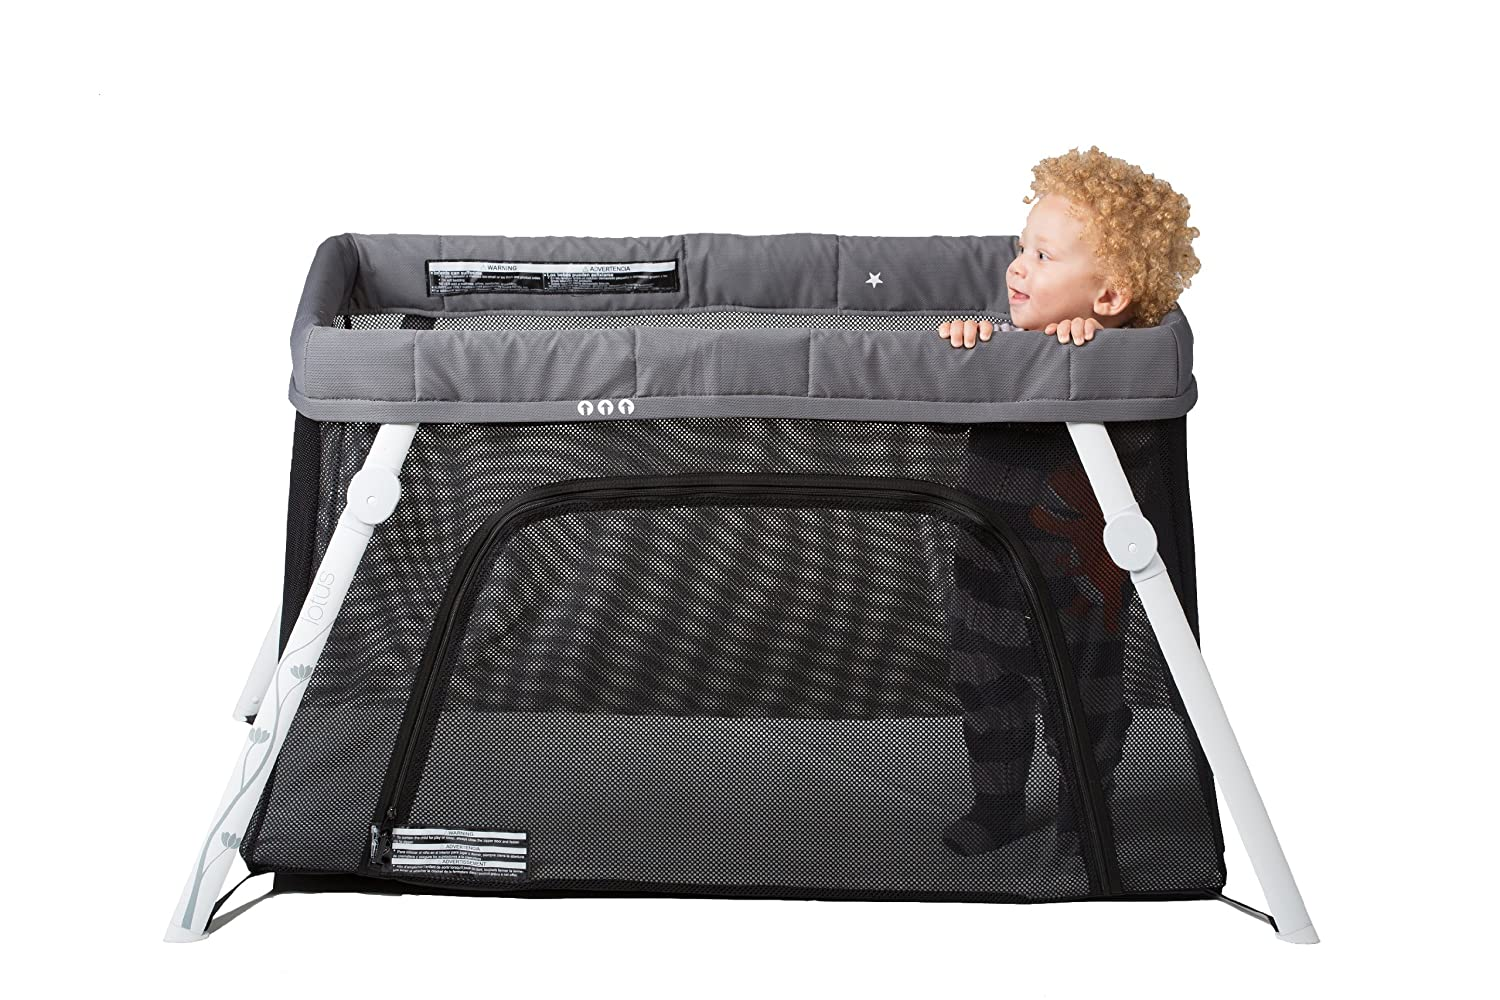 Gocrib adventure crib for sale - Amazon Com Lotus Travel Crib And Portable Baby Playard Lotus Bed Baby